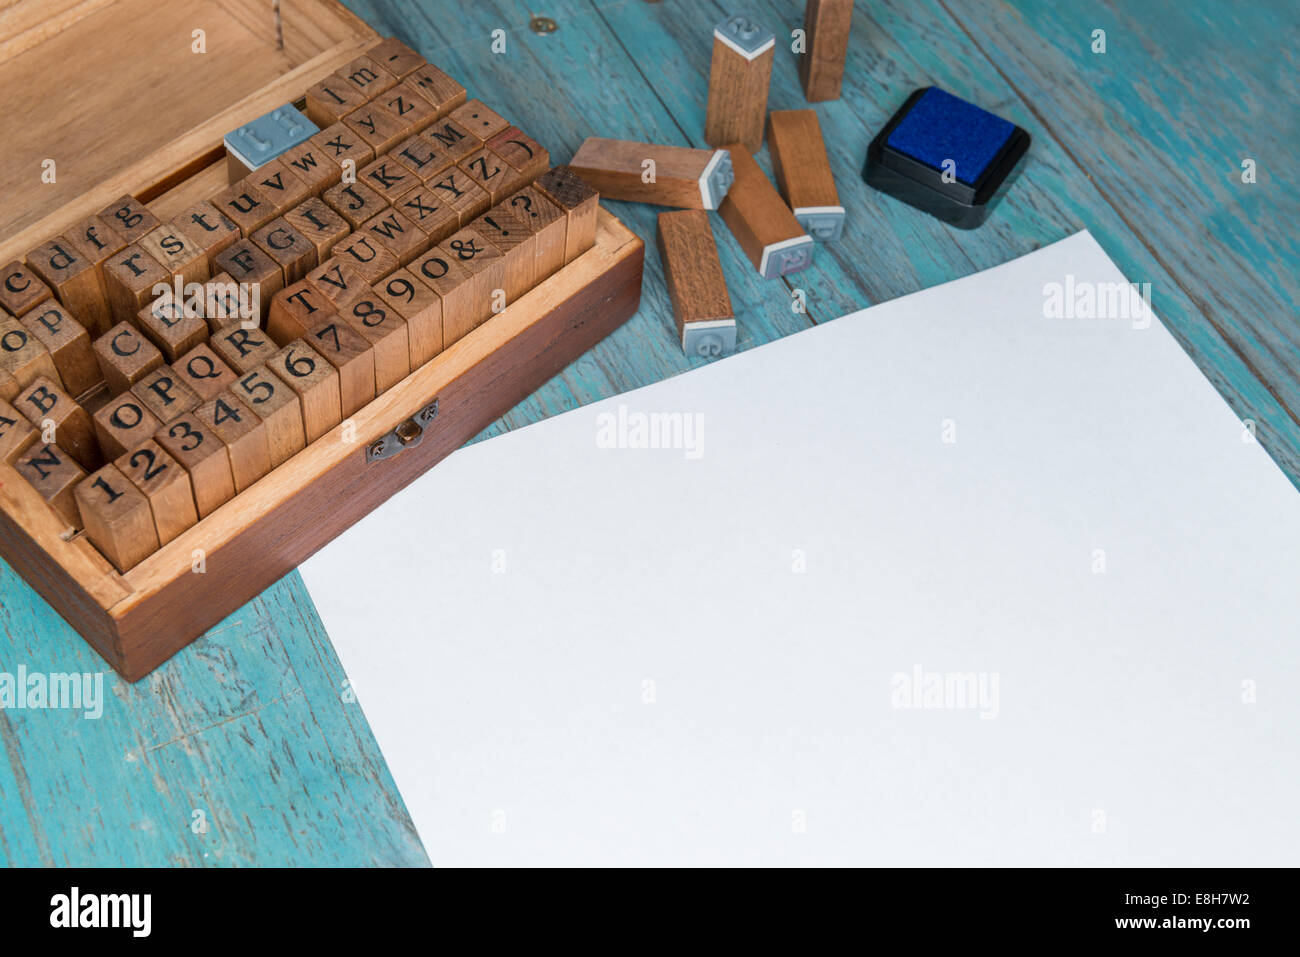 Sheet of white paper, wooden box of wooden letter stamps and an ink pad Stock Photo